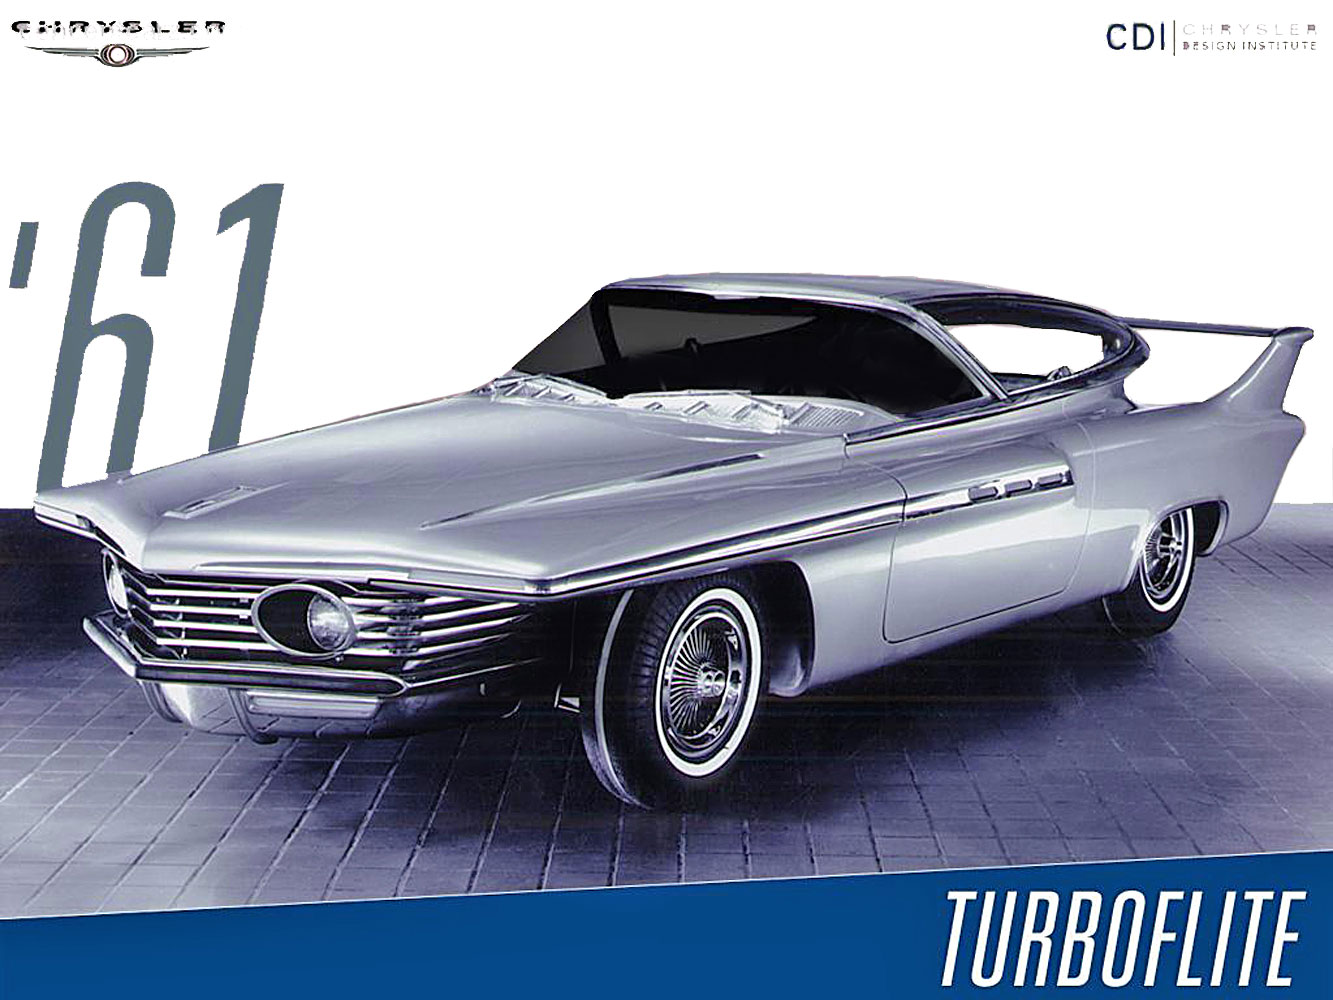 2006 Chrysler Imperial Concept Car Photos Catalog 2018 HD Wallpapers Download free images and photos [musssic.tk]